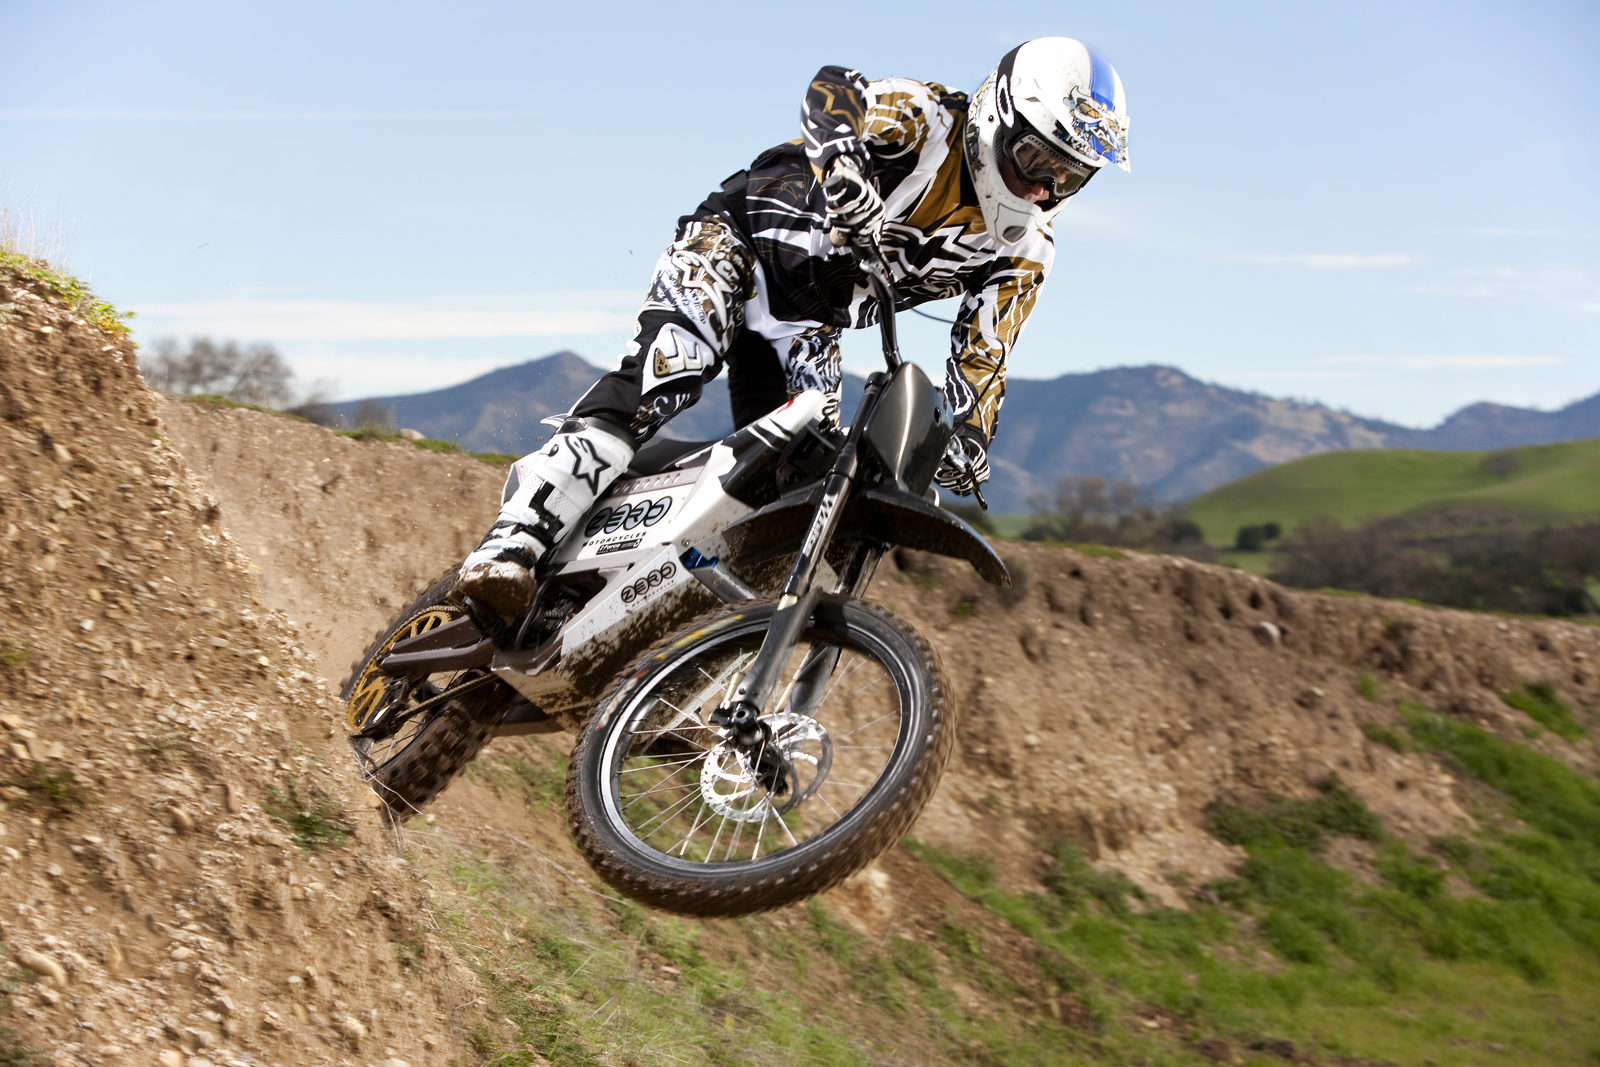 '.2010 Zero X Electric Motorcycle: Zaca Station - Jump Off Wall Burm.'